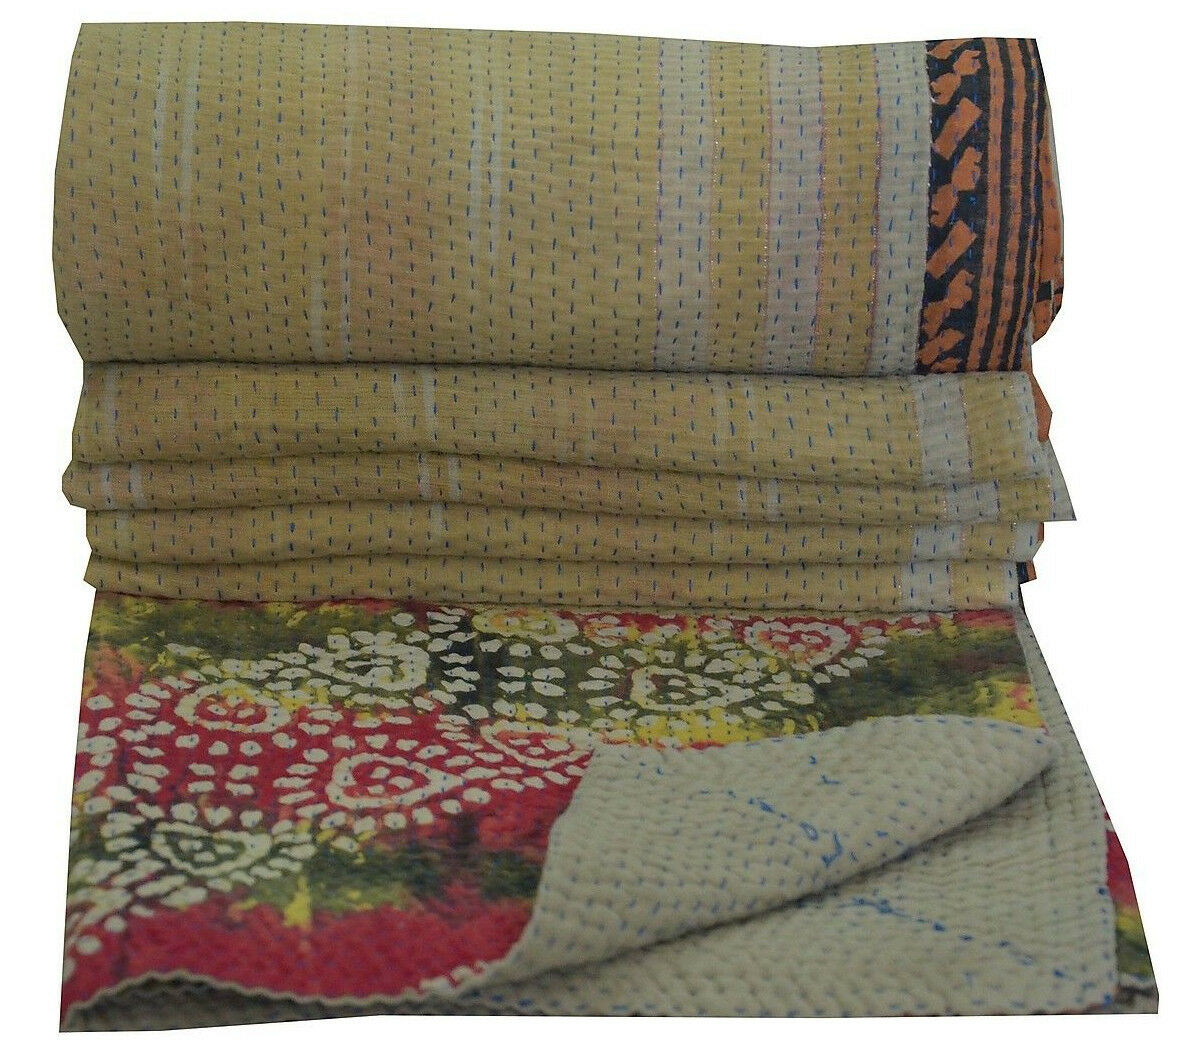 Indian Vintage Cotton Kantha Quilt Reversible Ralli Blanket Authentic Bedspread